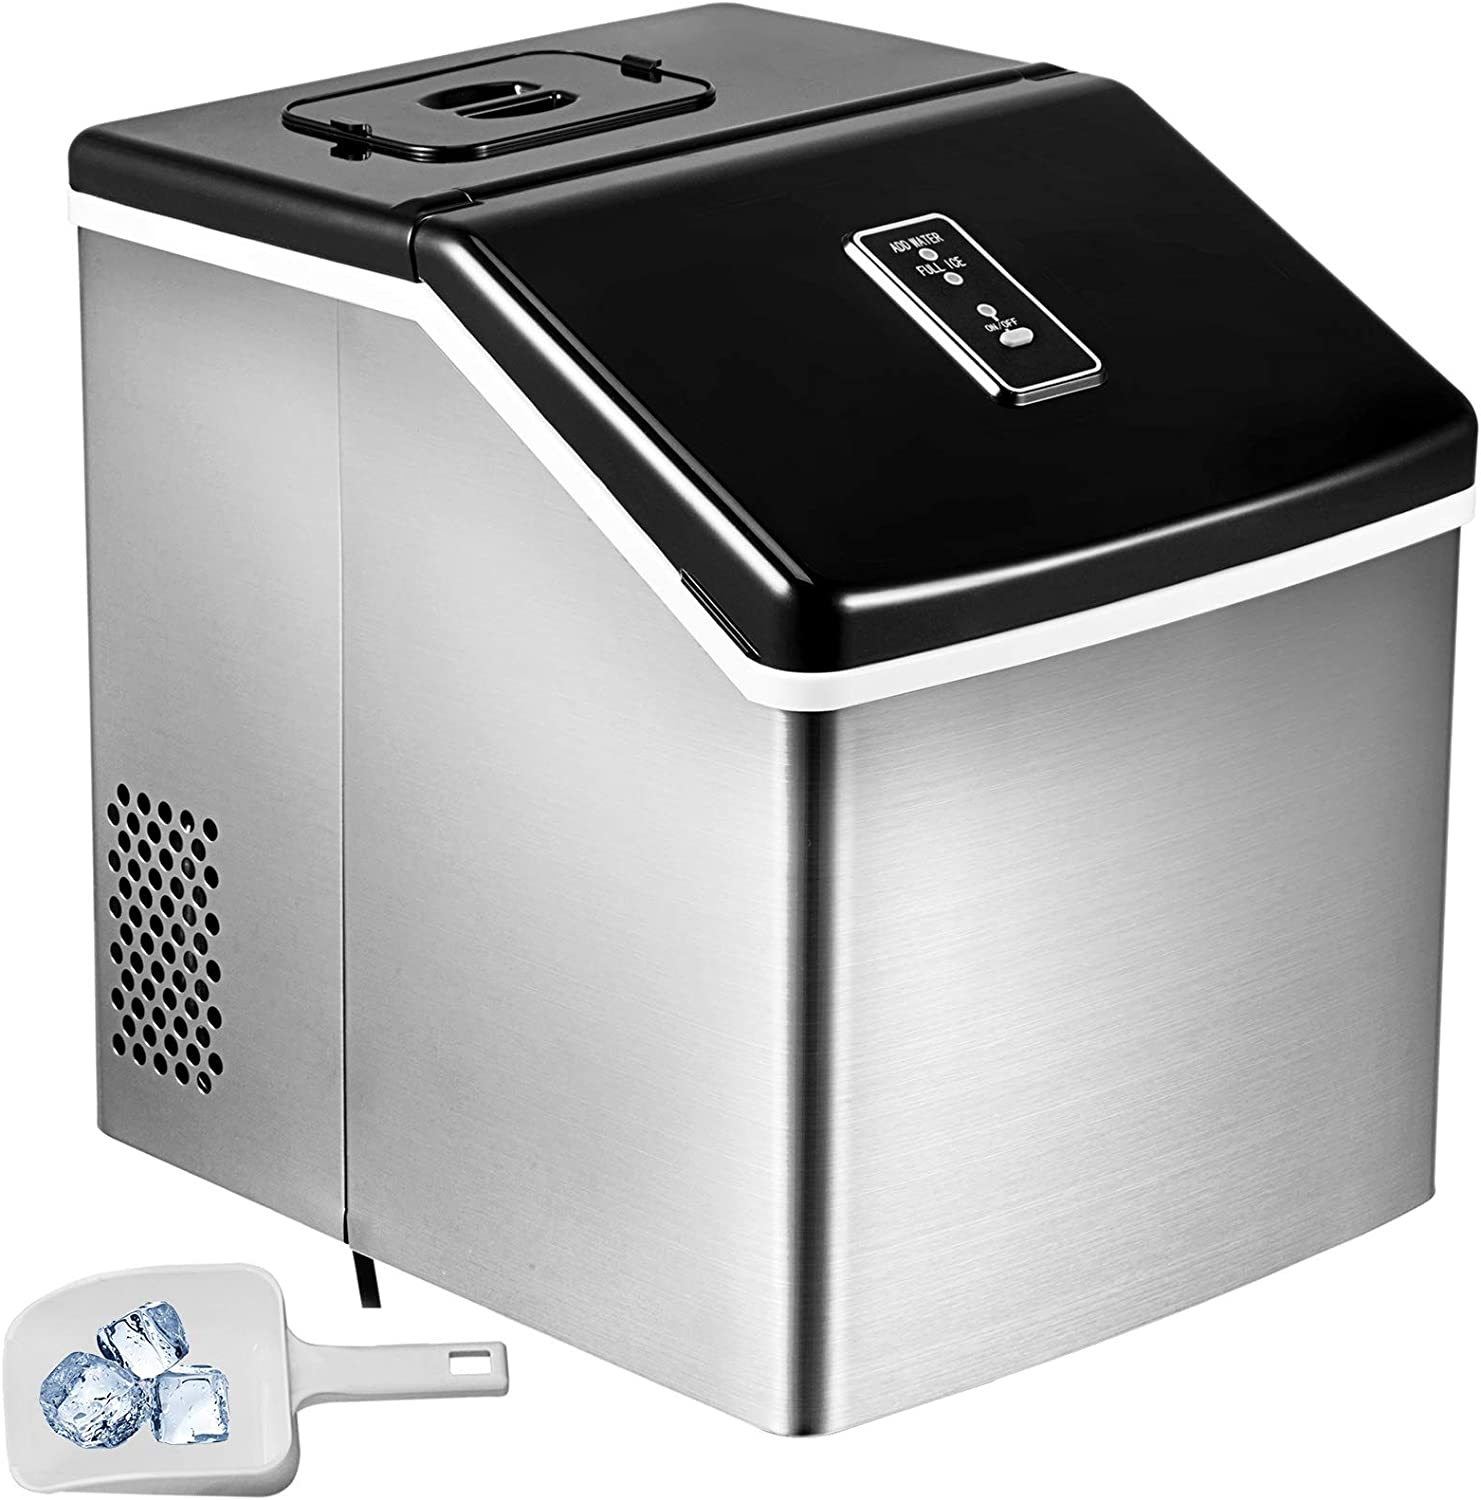 VBENLEM 28LBS 24H Portable Clear Ice Maker Auto Clear Cube Ice Making Machine with Control Panel Stainless Steel Countertop with Ice Scoop Suit for Domestic and Commercial Use